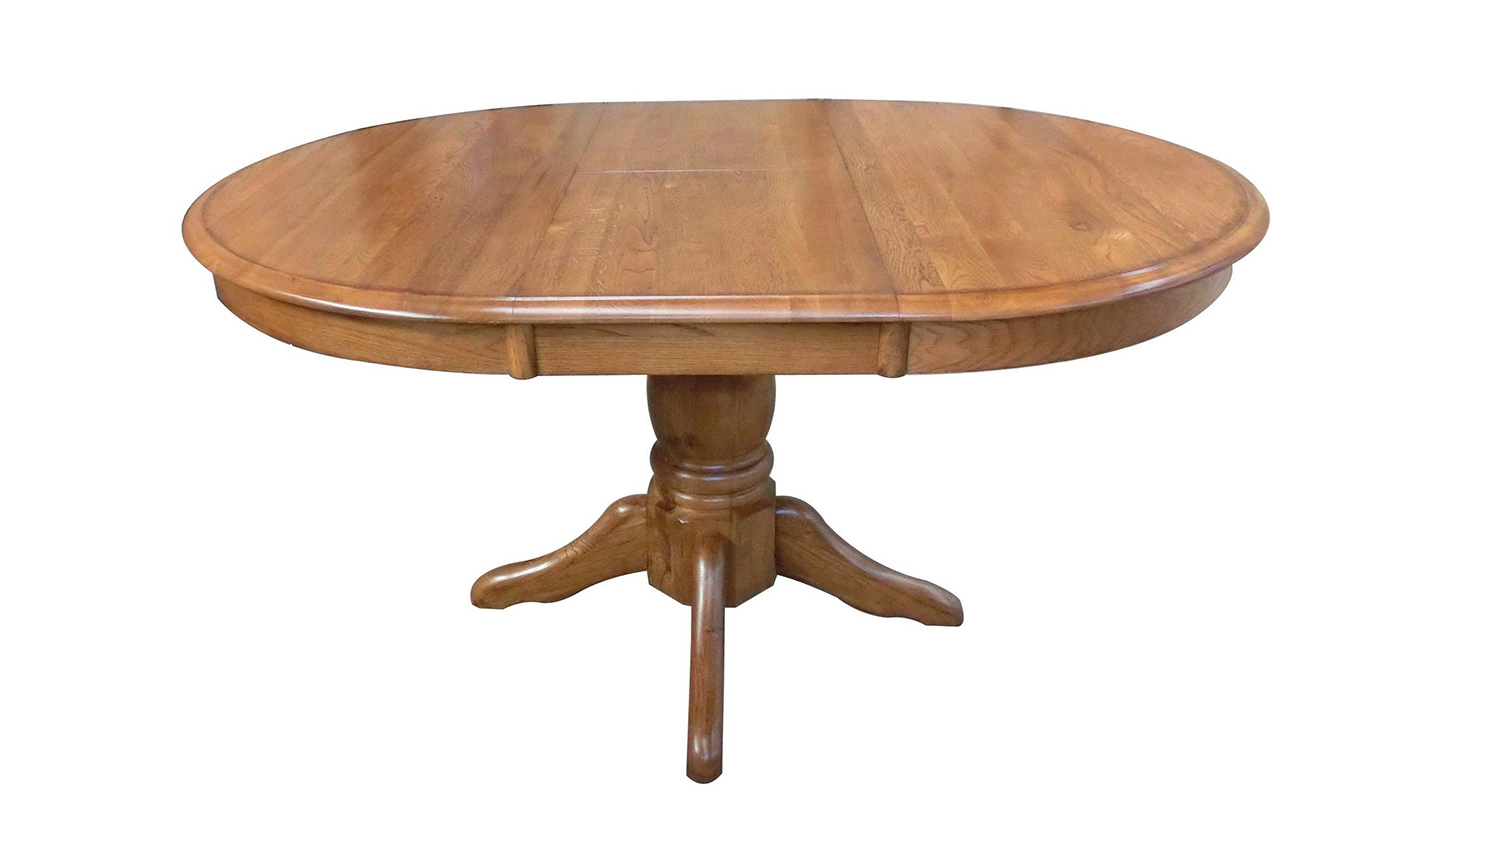 Chelsea Home Lacewood 30-inch High Pedestal Table - Hervest Oak